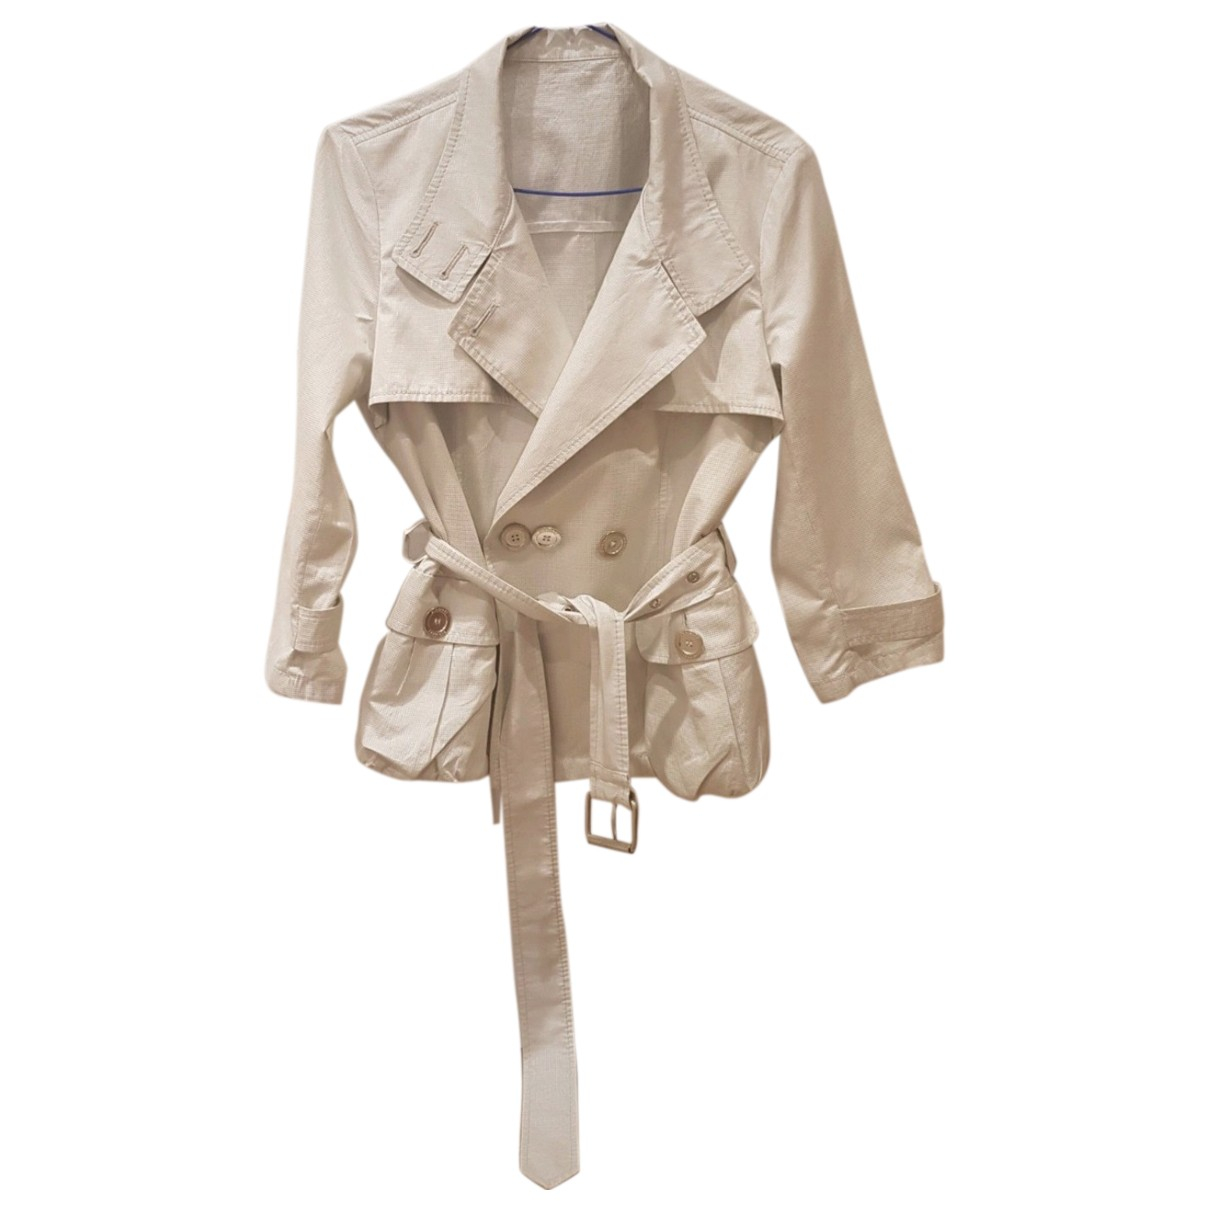 Burberry \N Silver jacket for Women 42 FR